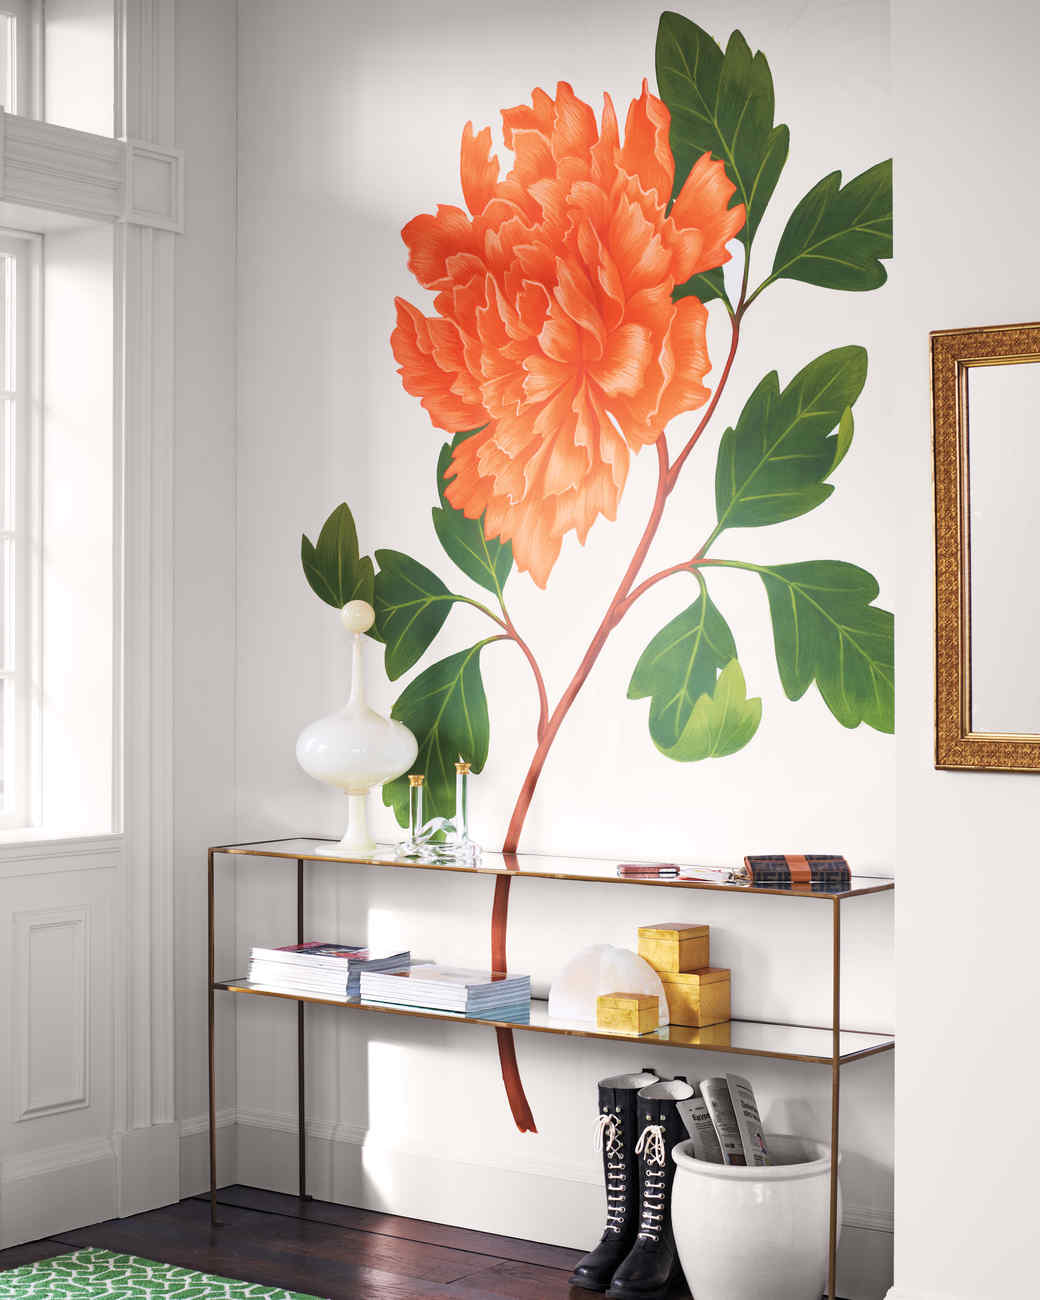 Decorating With Flowers floral decorating ideas | martha stewart